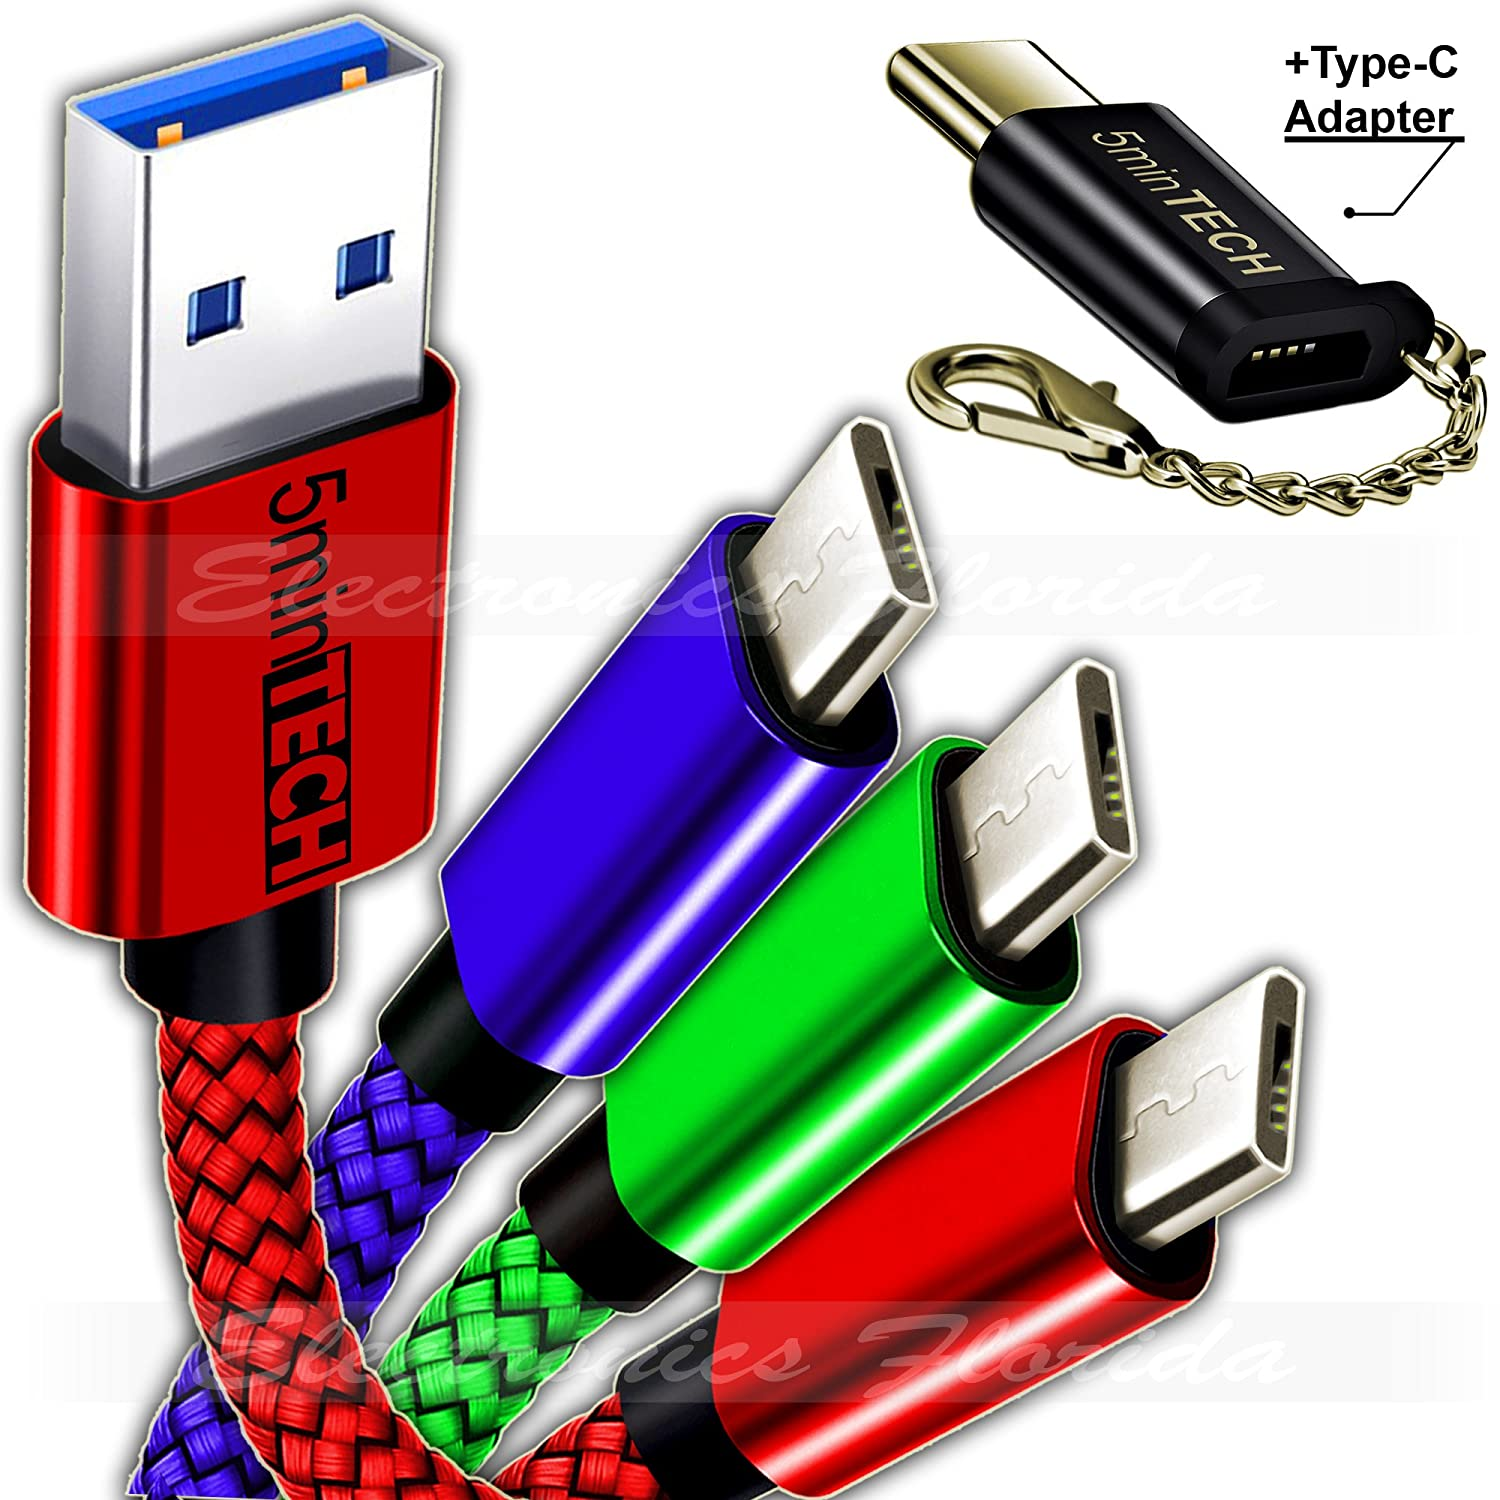 [3 pack] of USB Braided Cable + Type C Adapter (Data Sync Charger Charging Cord) (Blue,Green,Red, 15FT)